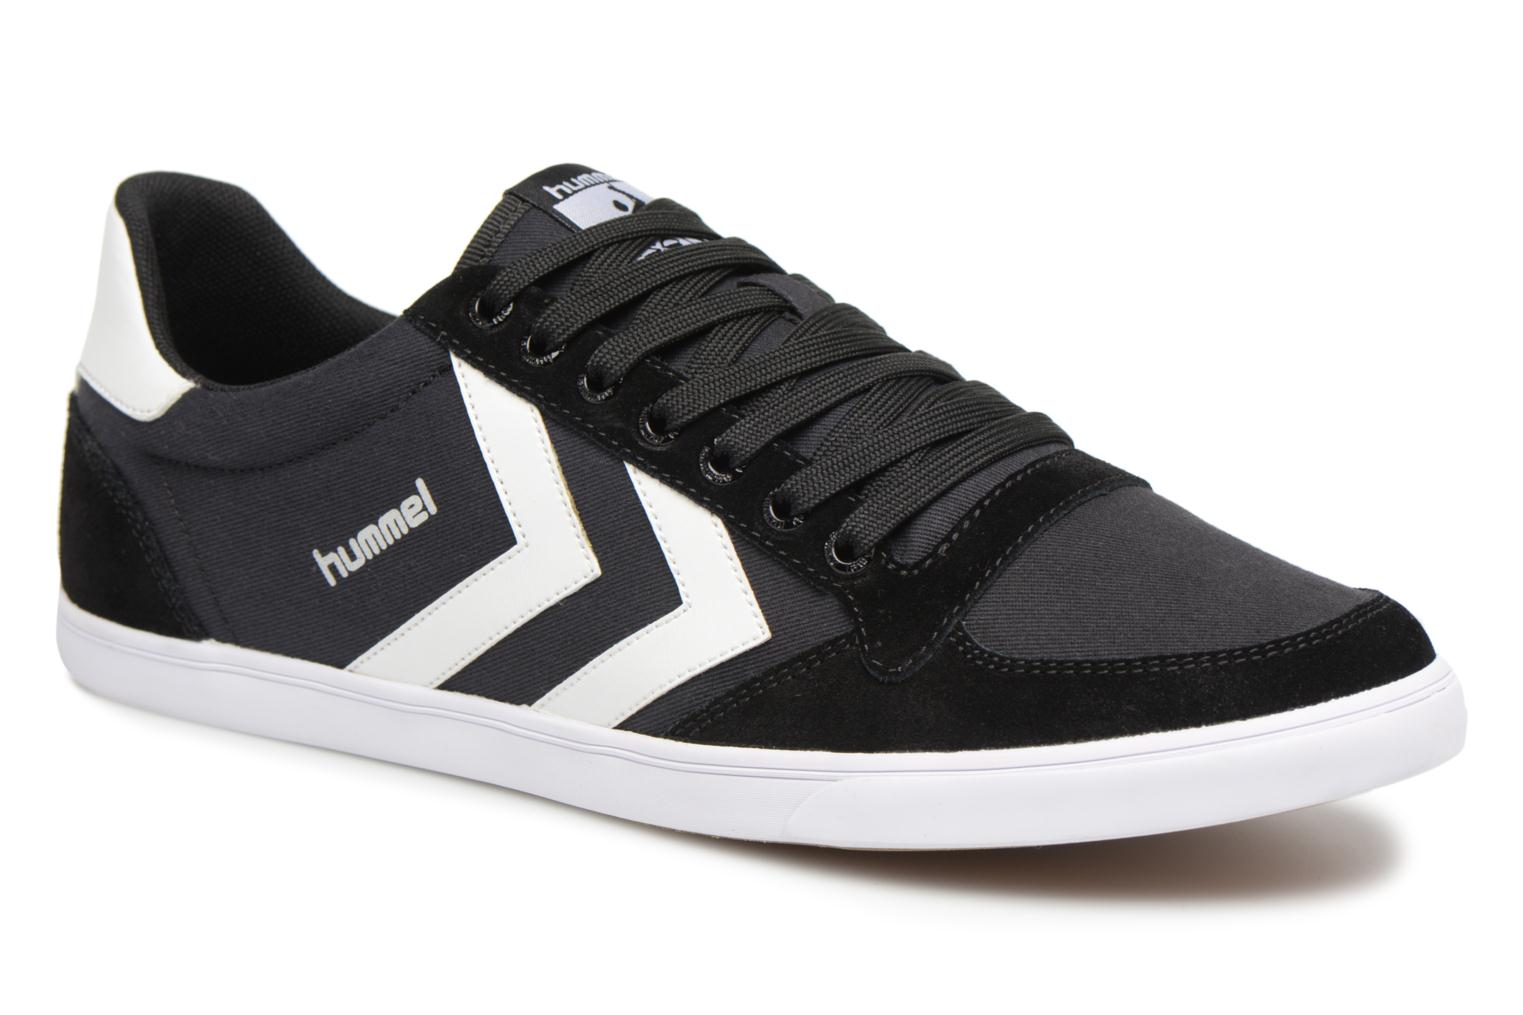 Marques Chaussure homme Hummel homme HUMMEL SLIMMER ST LOW Black/white